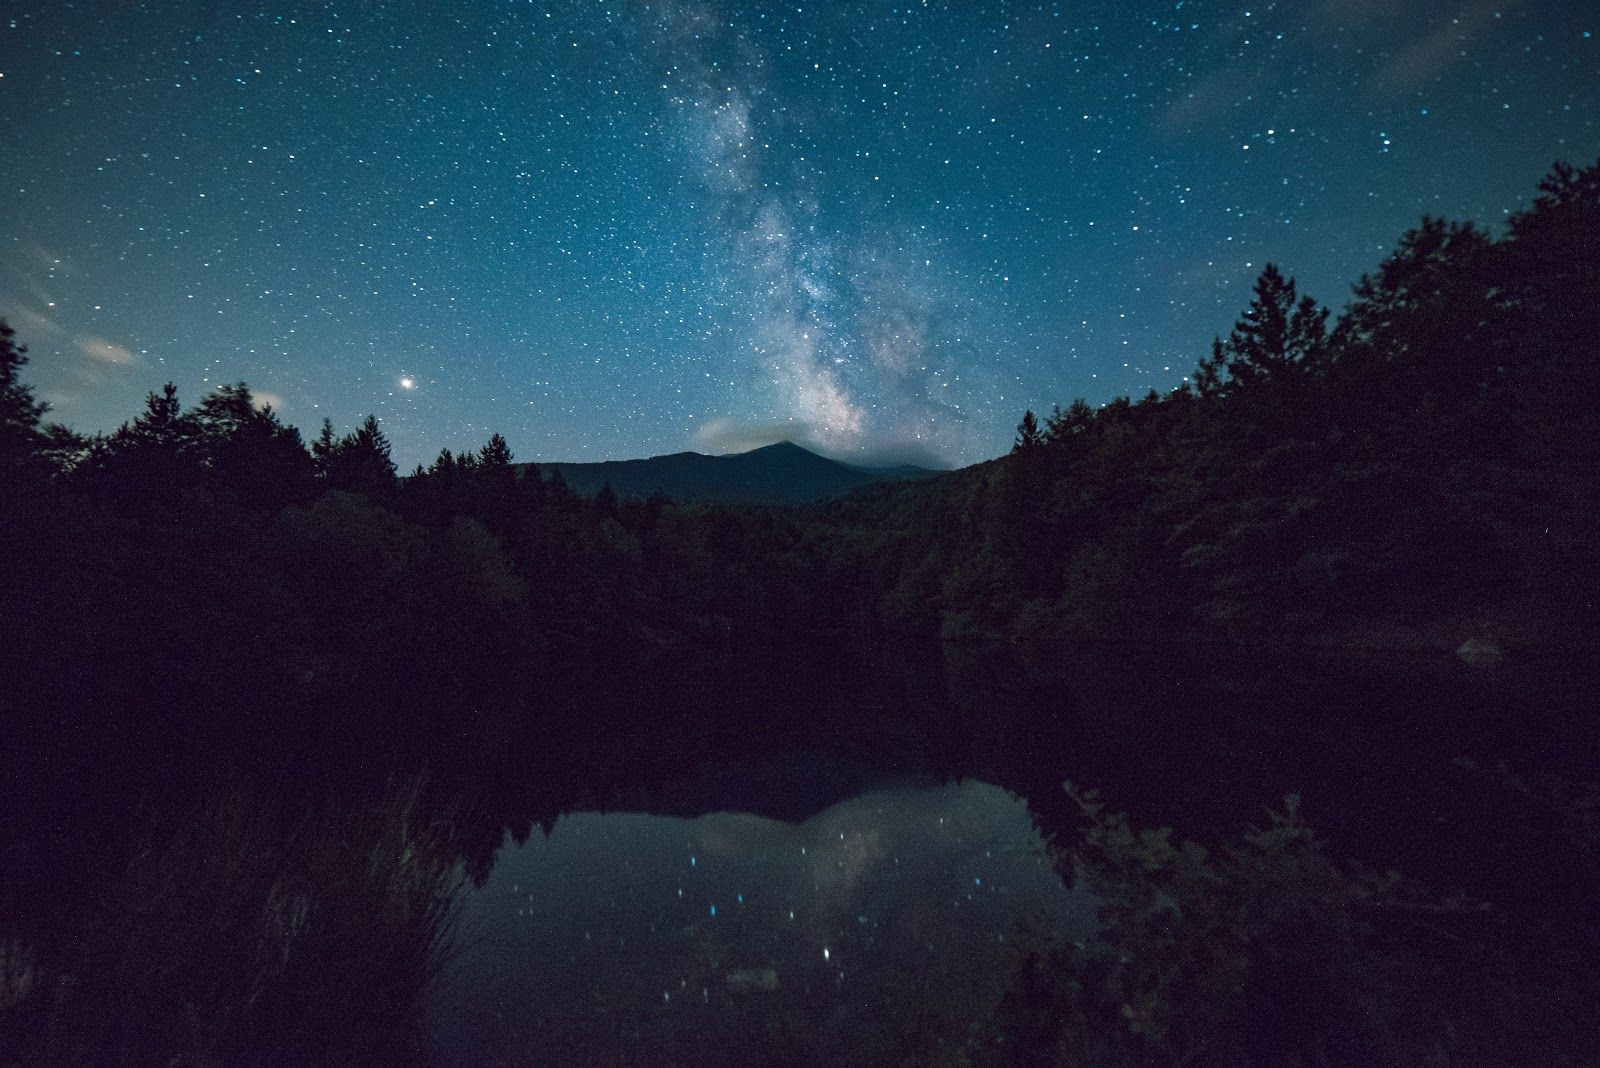 4k Wallpaper Calm Waters Dark Scenic View Of Forest During Night Time Gambar